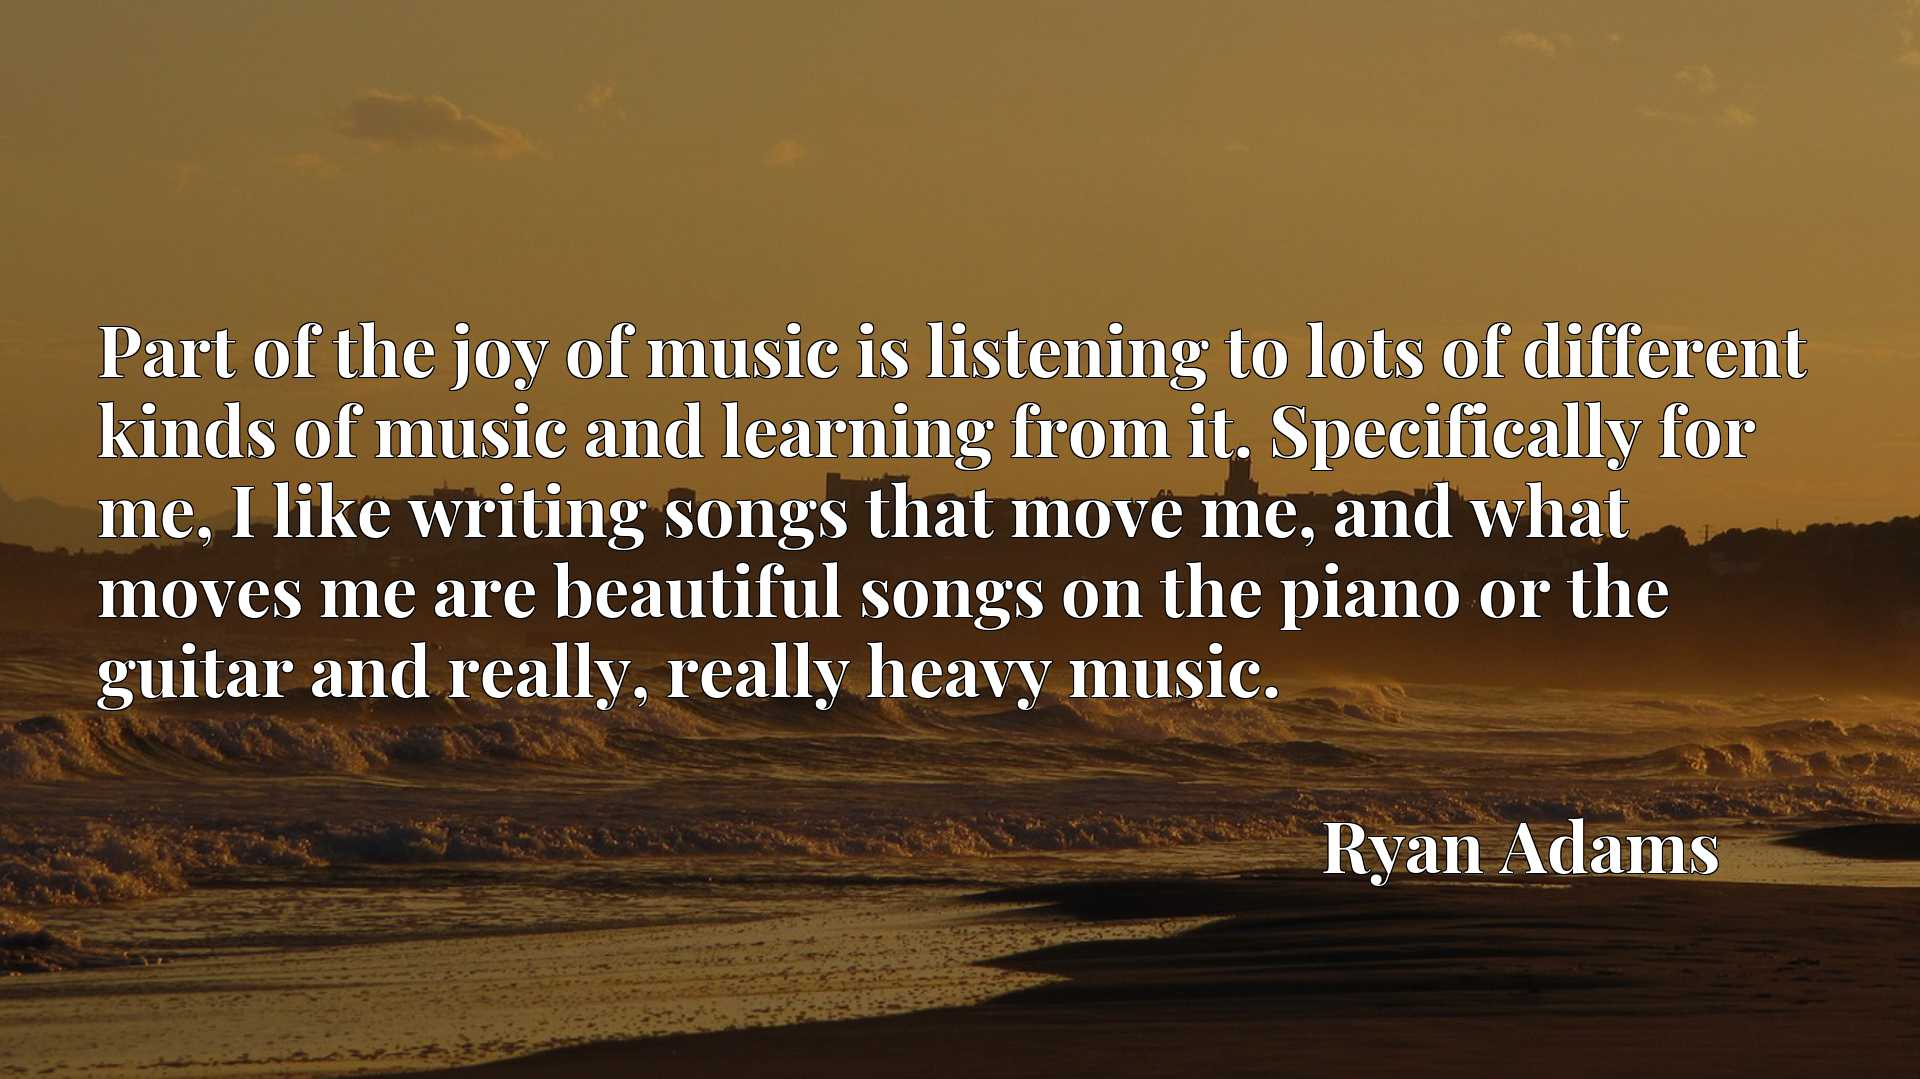 Part of the joy of music is listening to lots of different kinds of music and learning from it. Specifically for me, I like writing songs that move me, and what moves me are beautiful songs on the piano or the guitar and really, really heavy music.